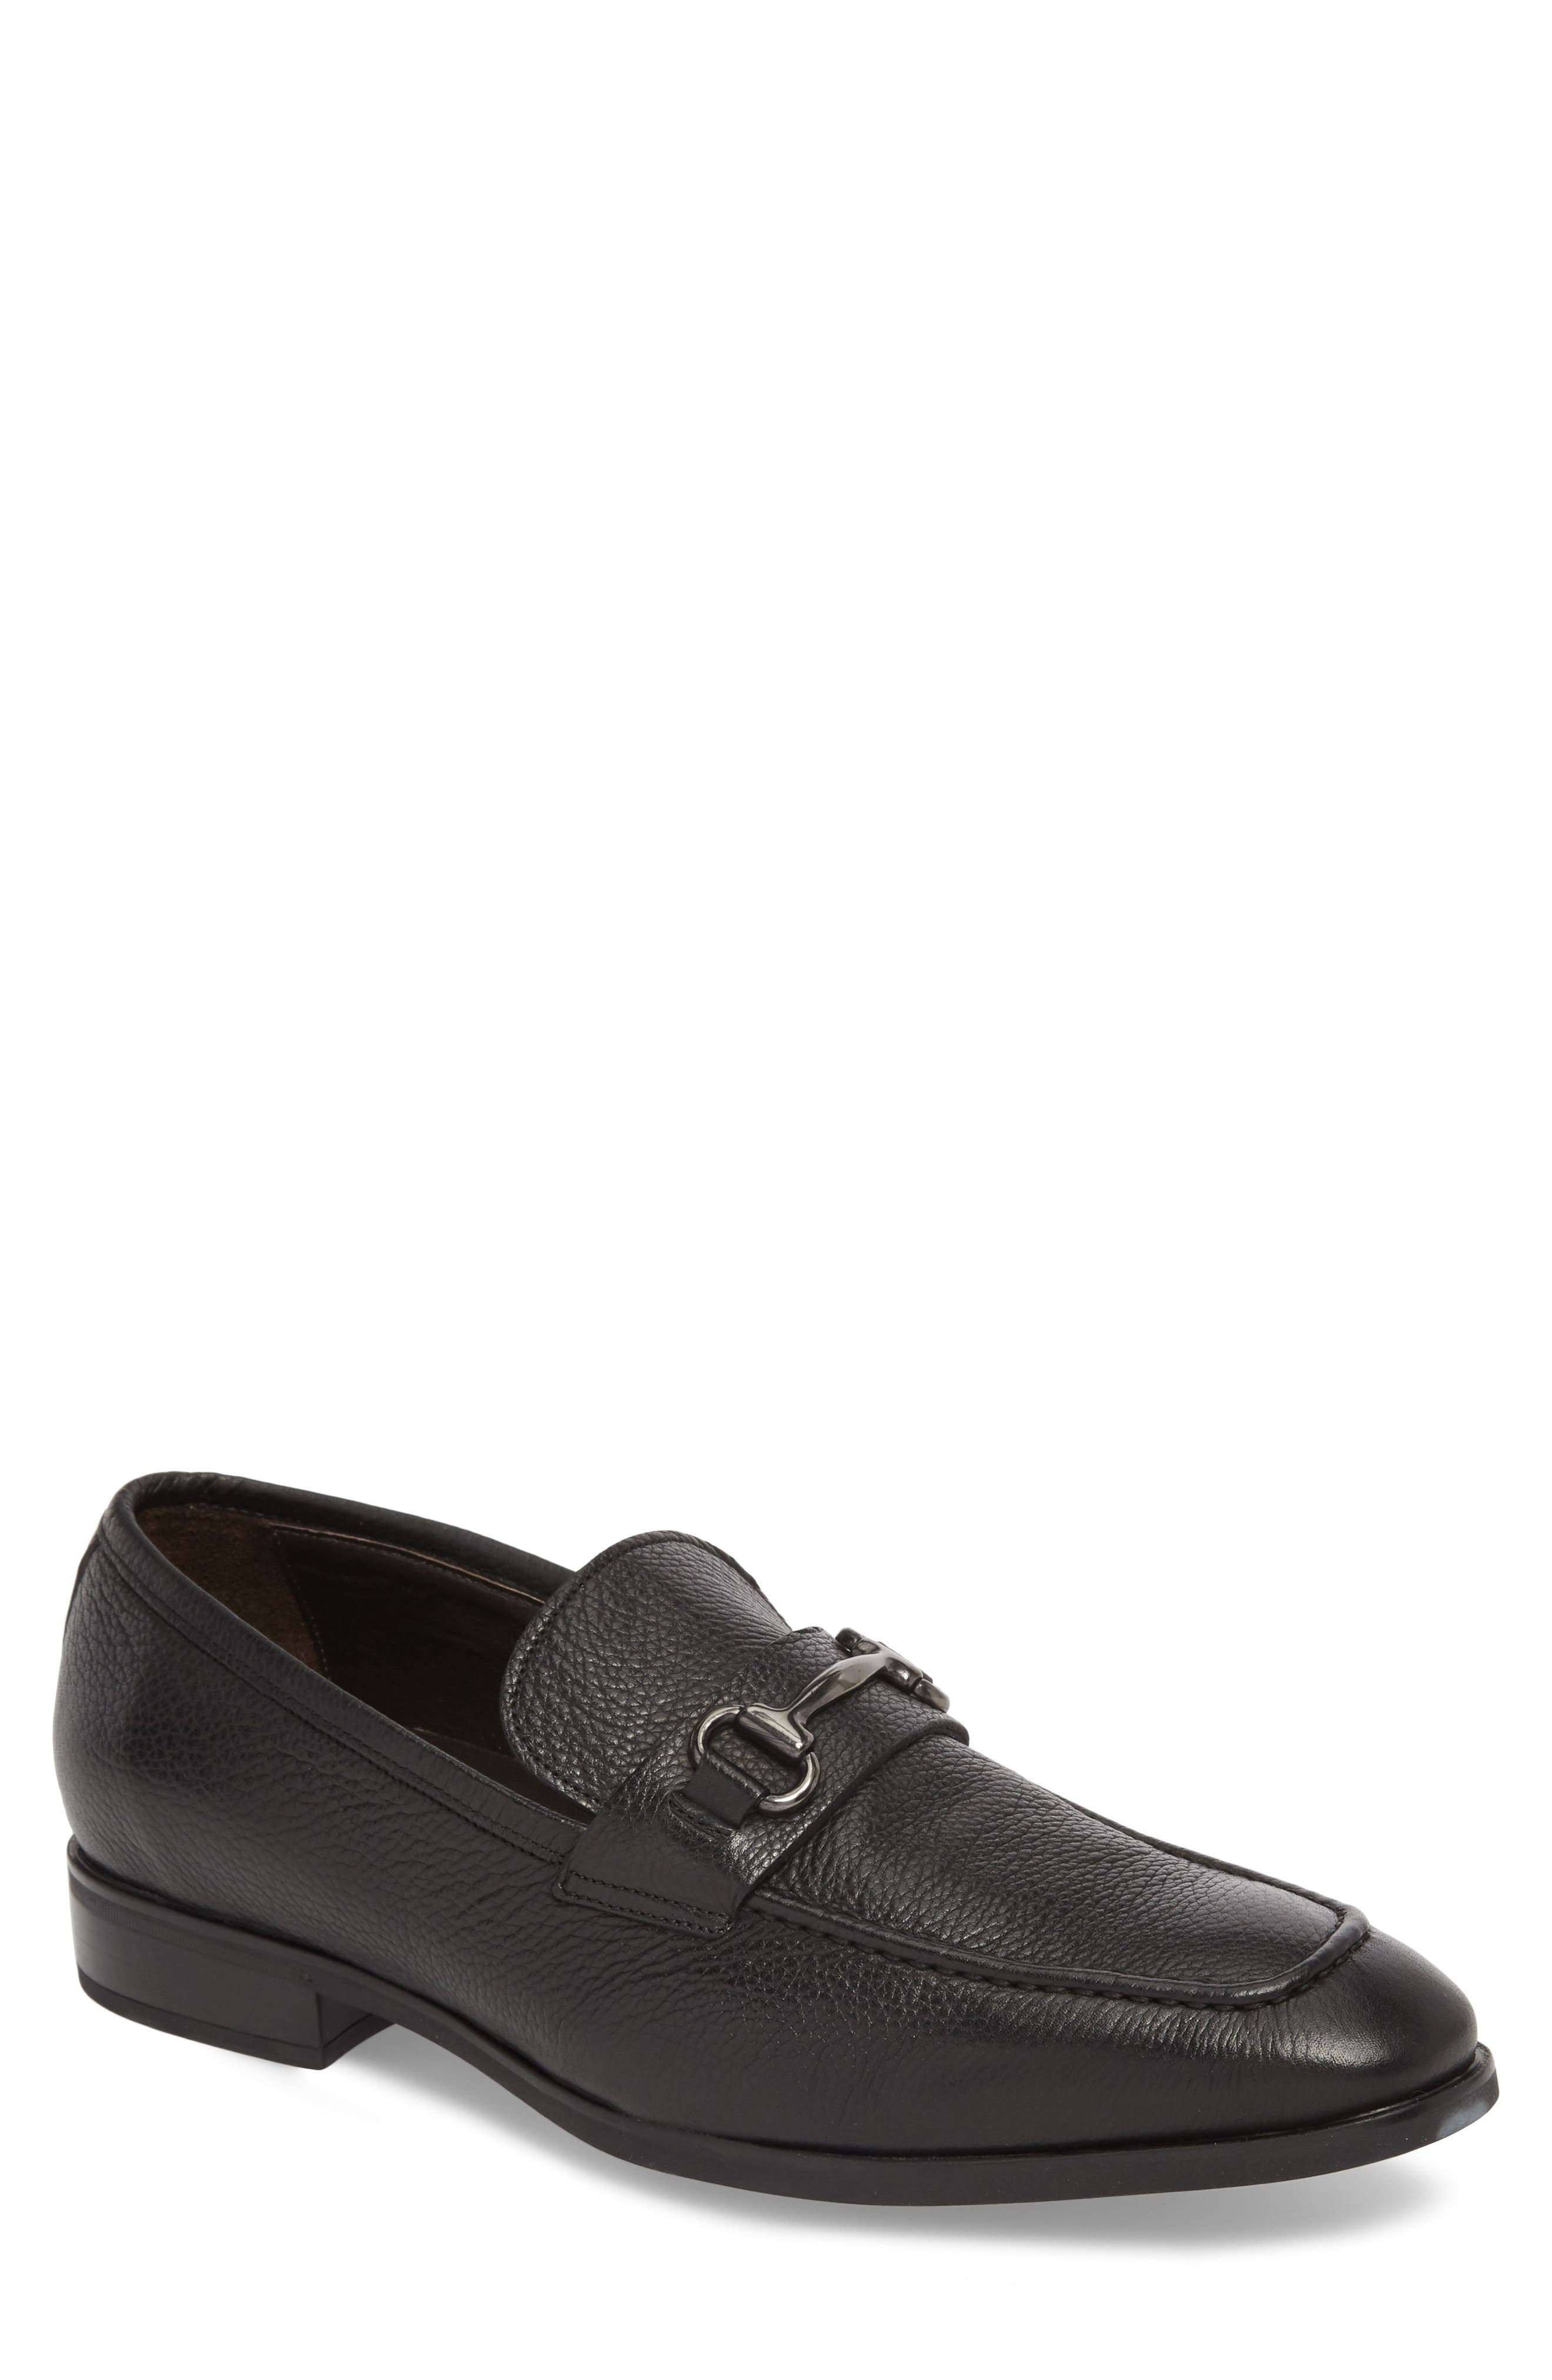 TO BOOT NEW YORK Men'S Brussels Leather Drivers in Black Leather